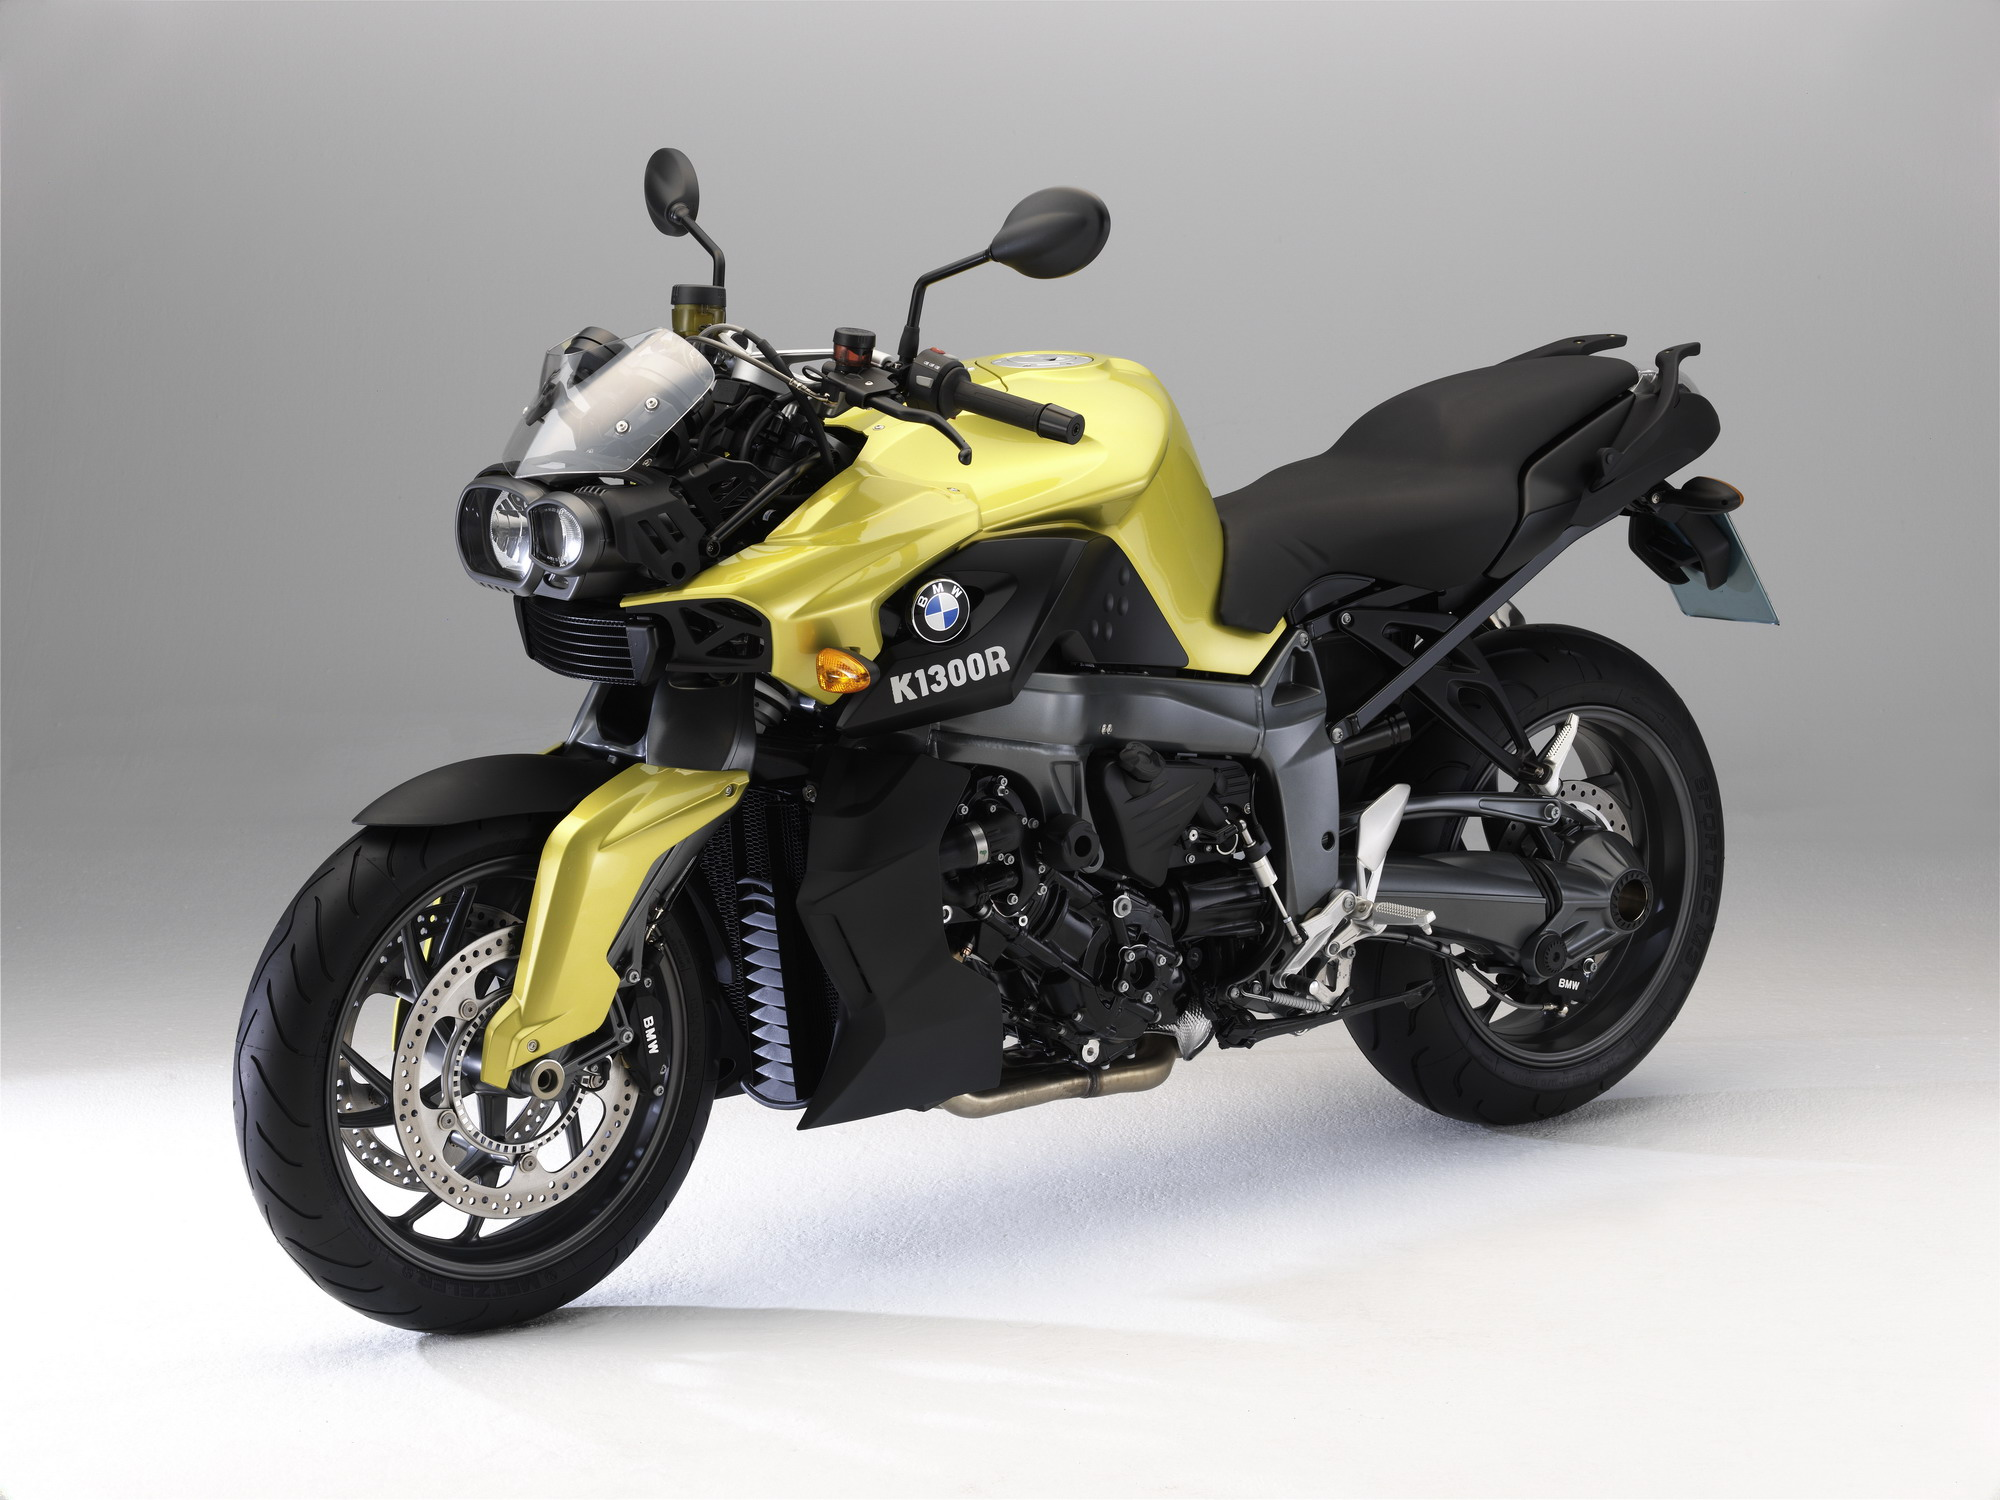 bmw f 800 st touring and k 1300 r dynamic special editions review top speed. Black Bedroom Furniture Sets. Home Design Ideas